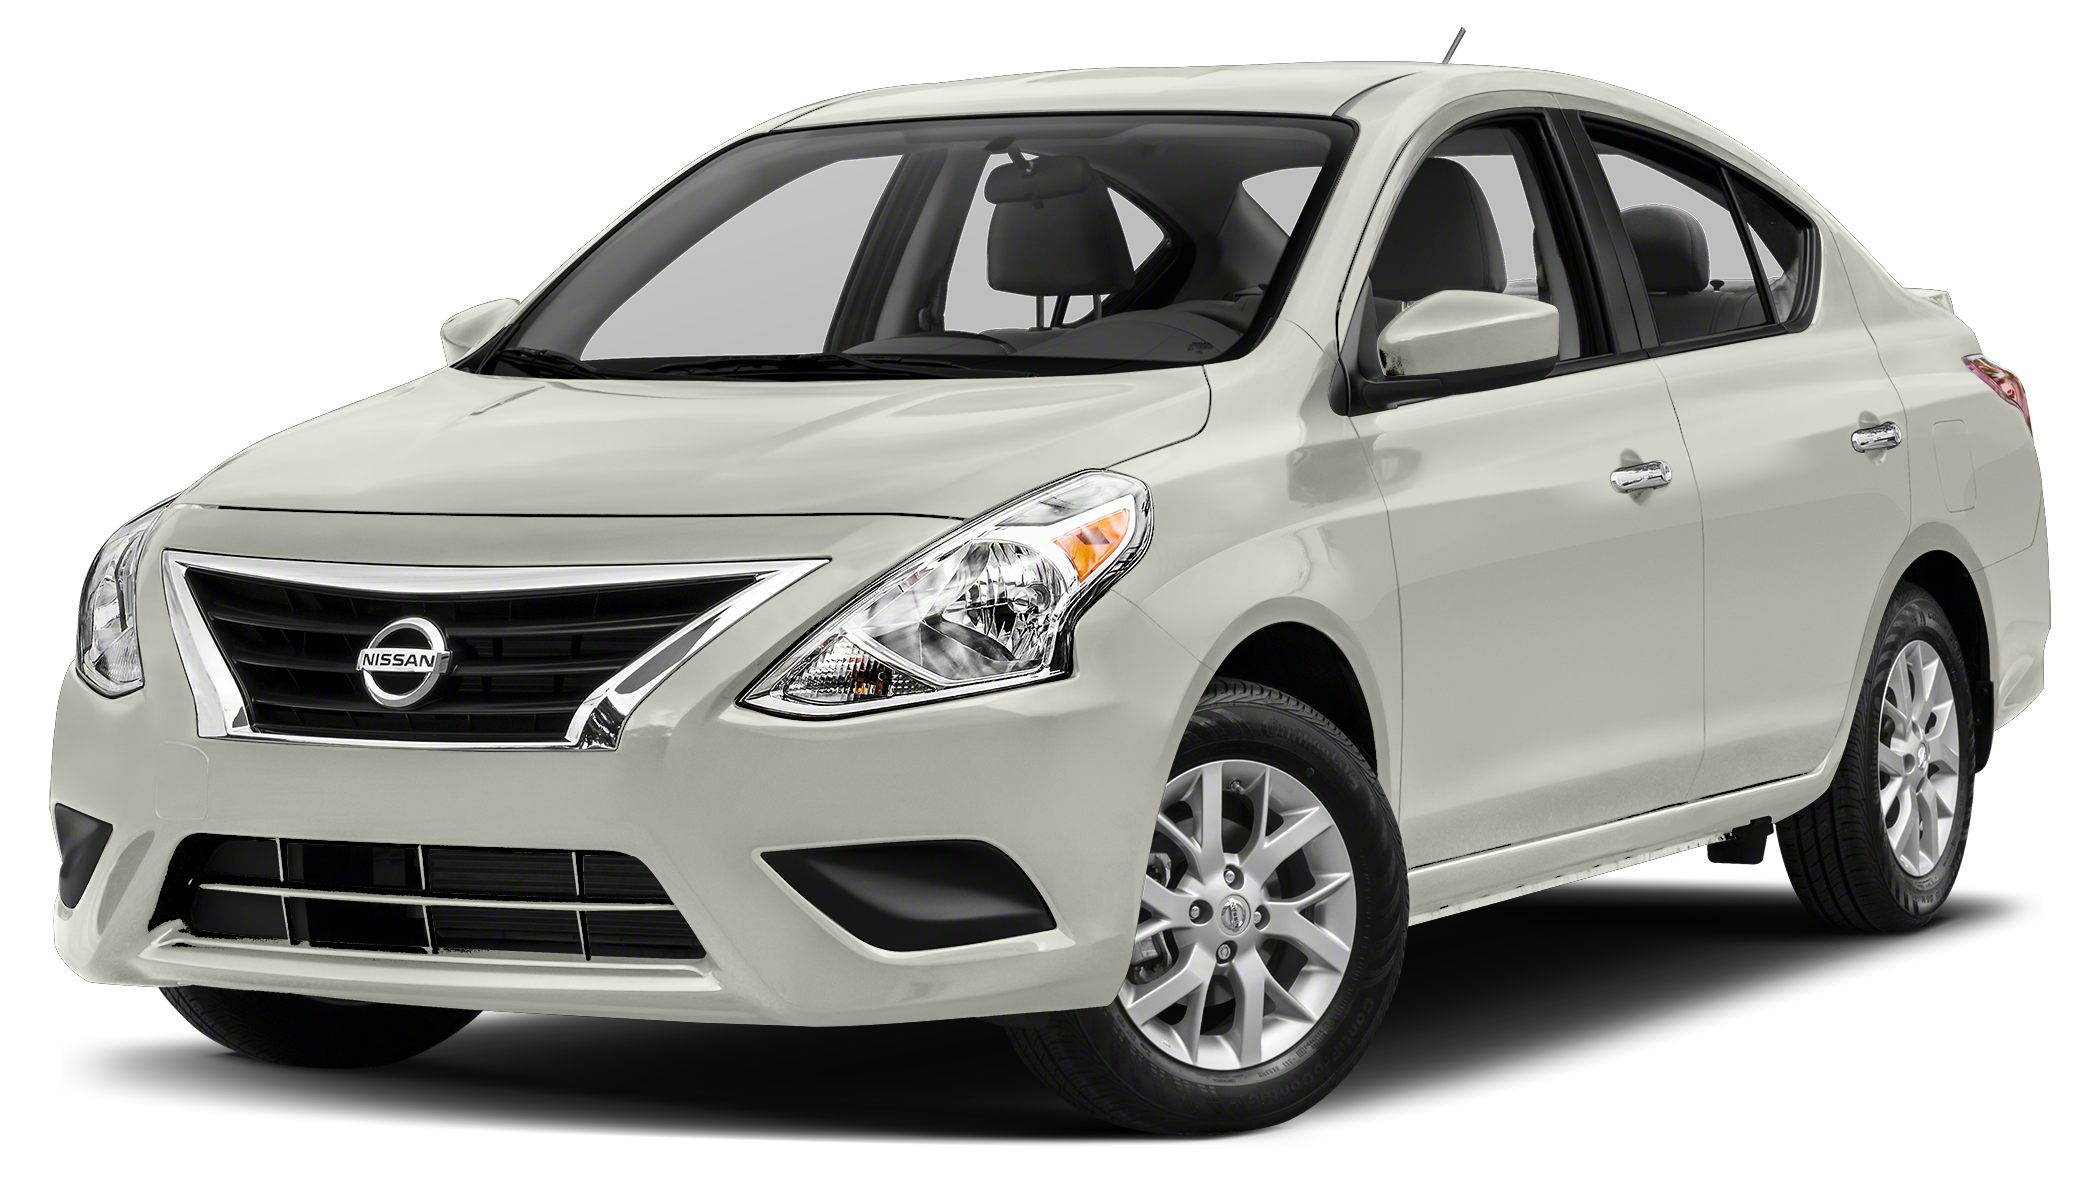 2017 Nissan Versa 16 S This vehicle wont be on the lot long Demonstrating exceptional versatili